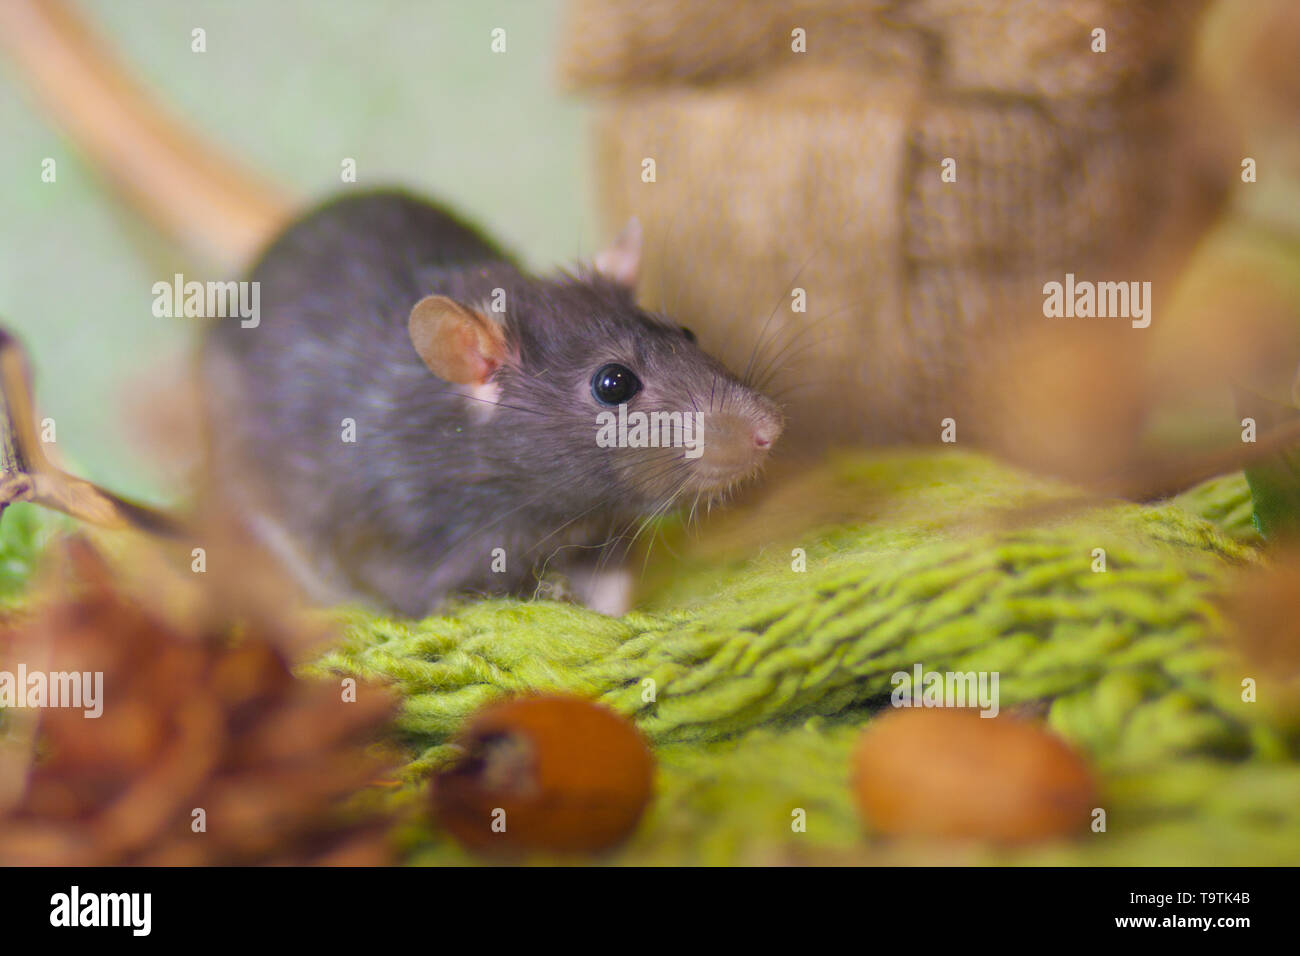 Rat in the woods. Gray mouse on green background. Rodent sitting in the grass. - Stock Image